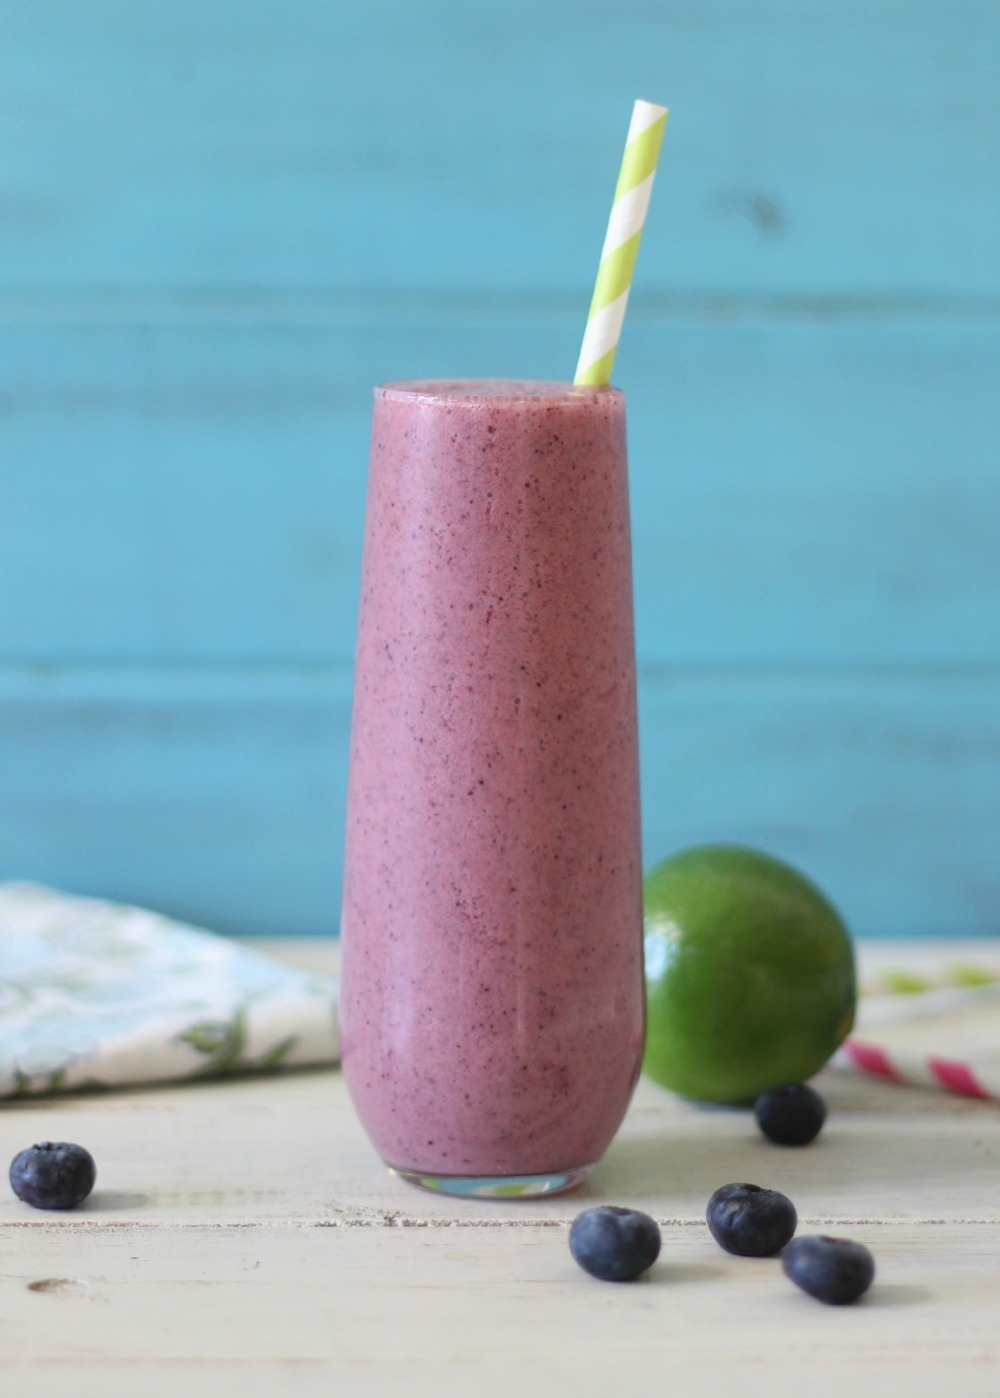 Blueberry Key Lime Pie Smoothie